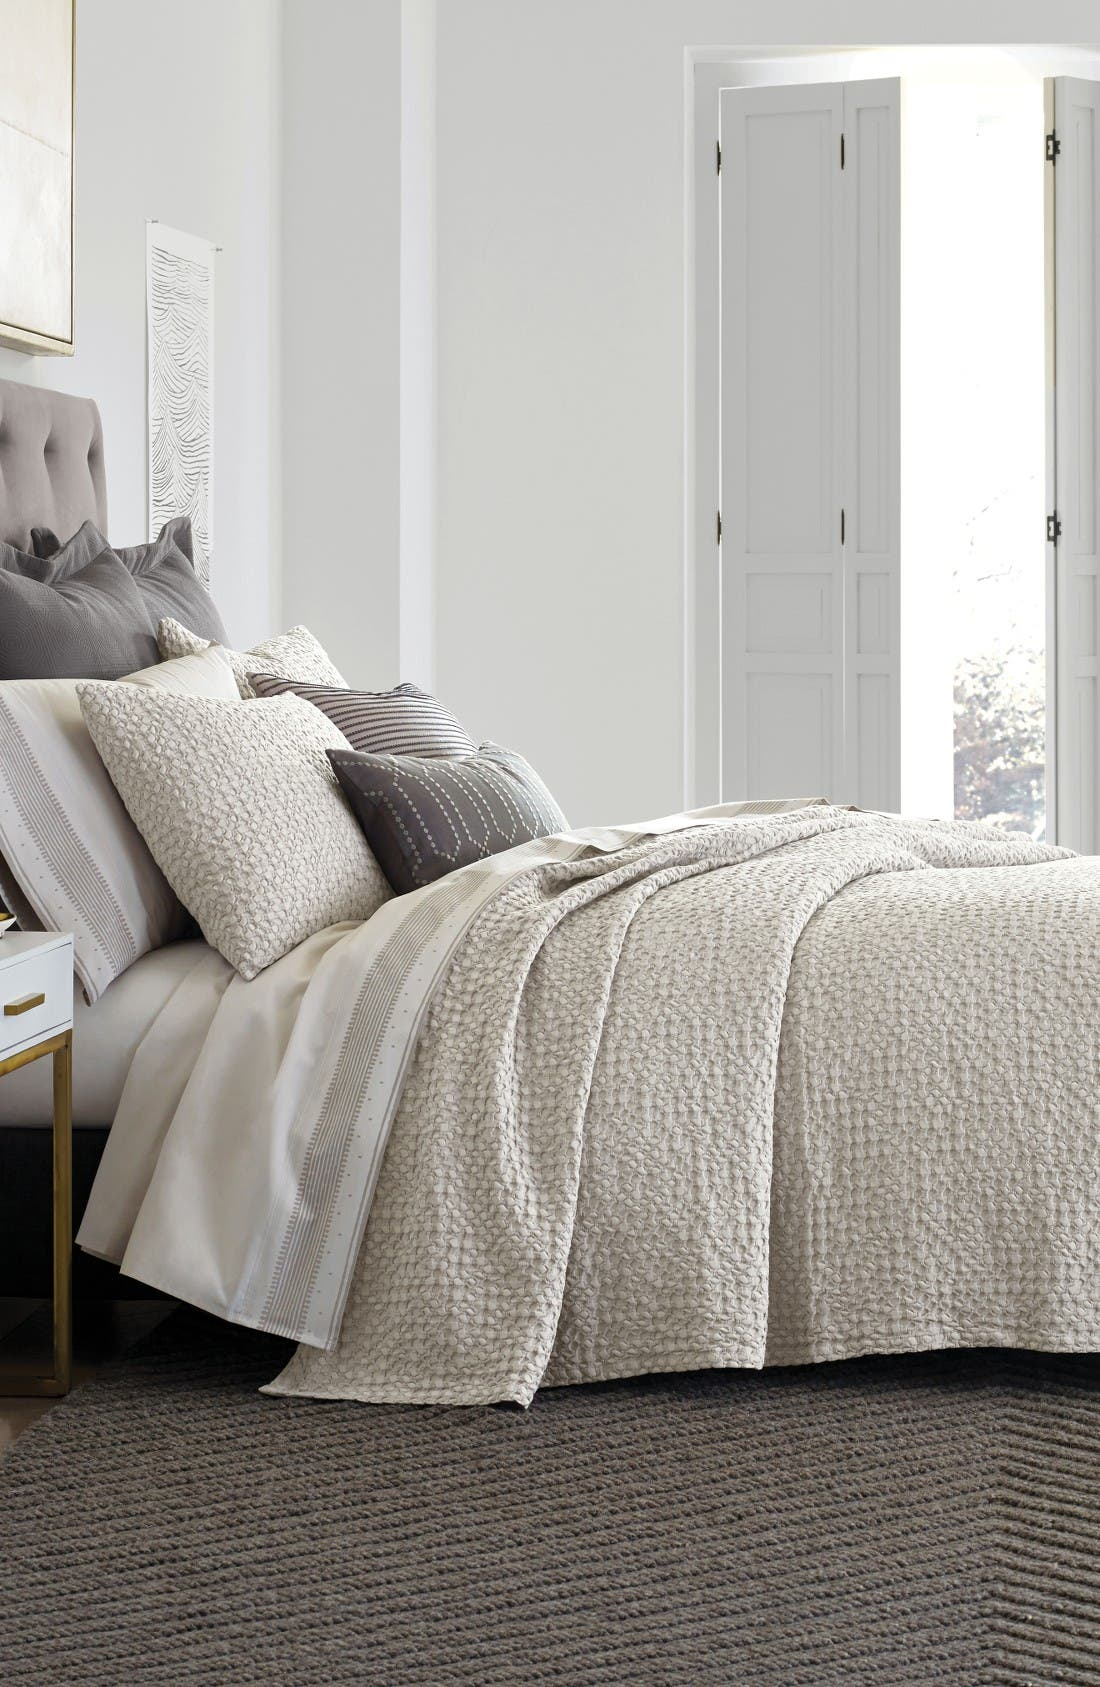 DwellStudio Thayer Bedding Collection